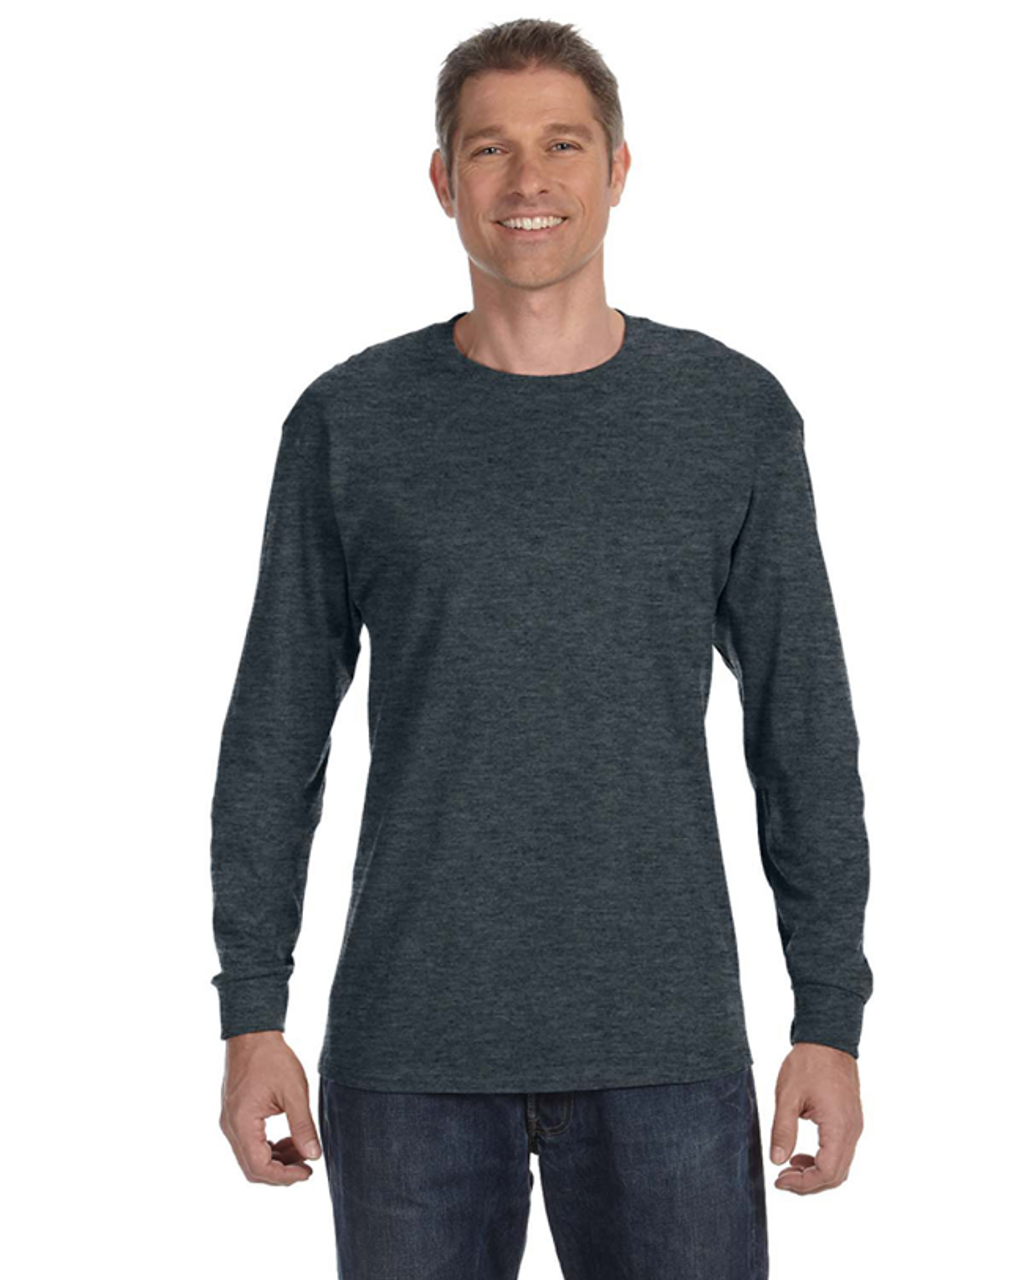 Black Heather - 29L Jerzees Long Sleeve T-shirt